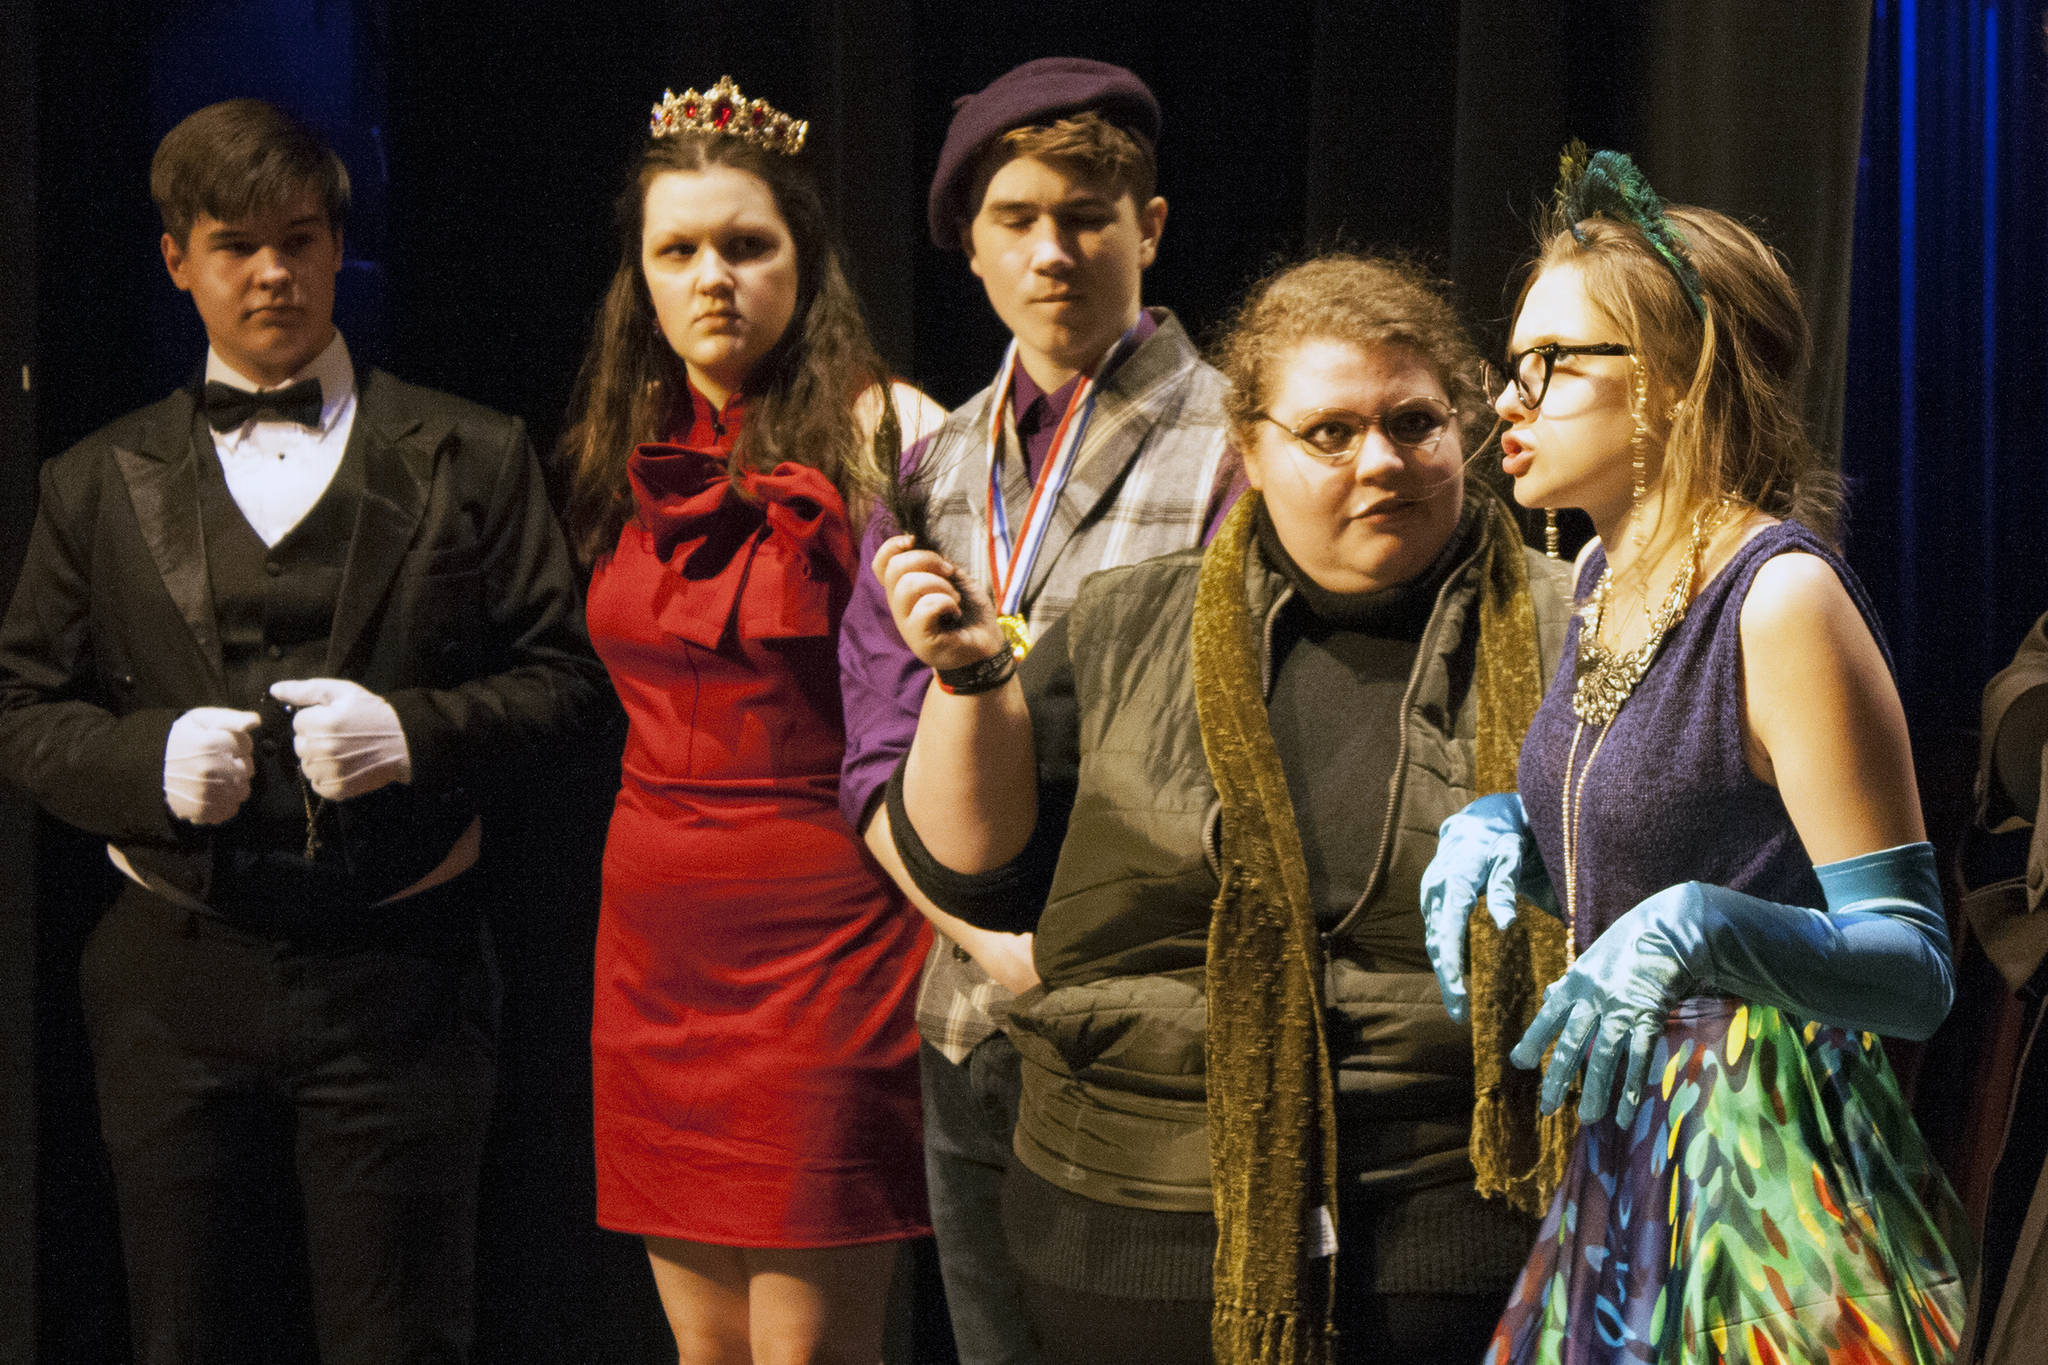 Mr. Green (Aria Moore) makes a serious accusation about Mrs. Peacock (Kayla Kohlhase) while holding a feather. A surprised Wadsworth (Toby Russell), Miss Scarlet (Amanda McDowell) and Professor Plum (Jager Hunt) look on. (Ben Hohenstatt | Juneau Empire)